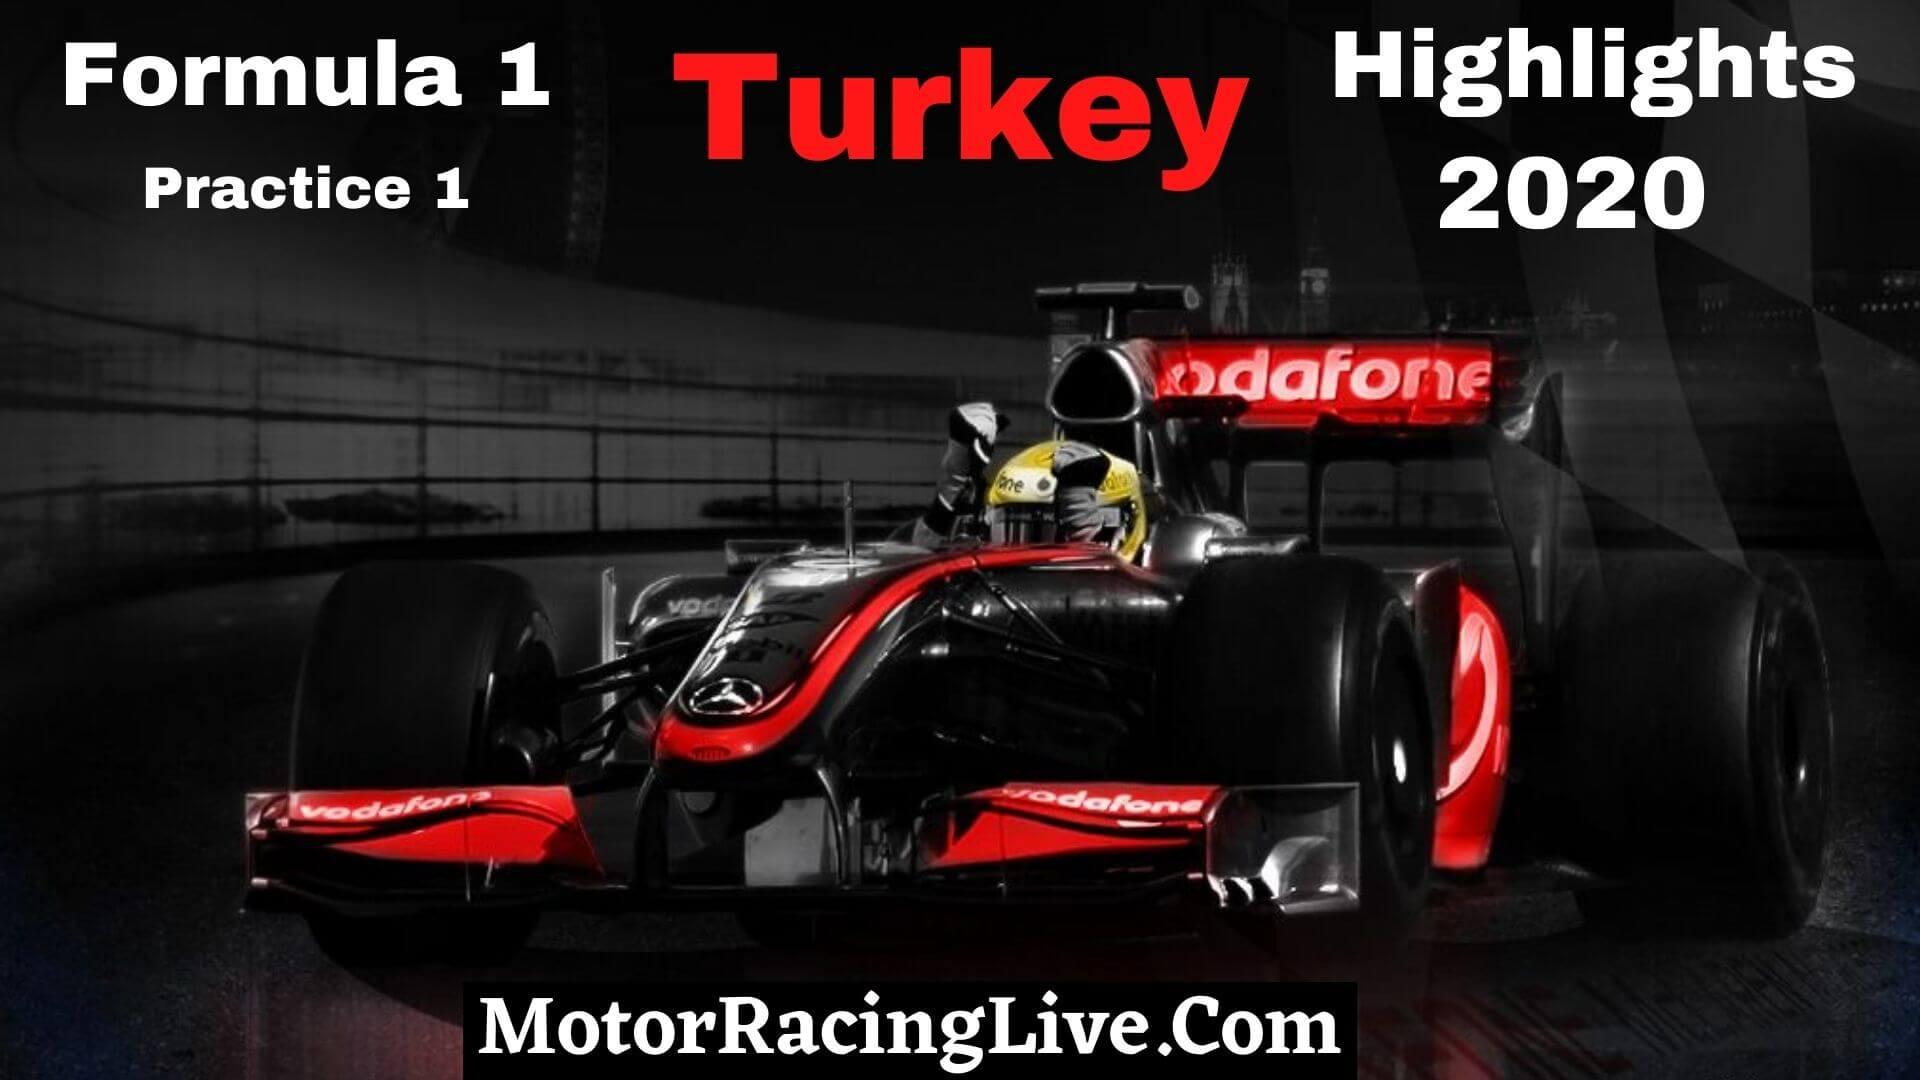 F1 Practice 1 Turkey GP 2020 Highlights